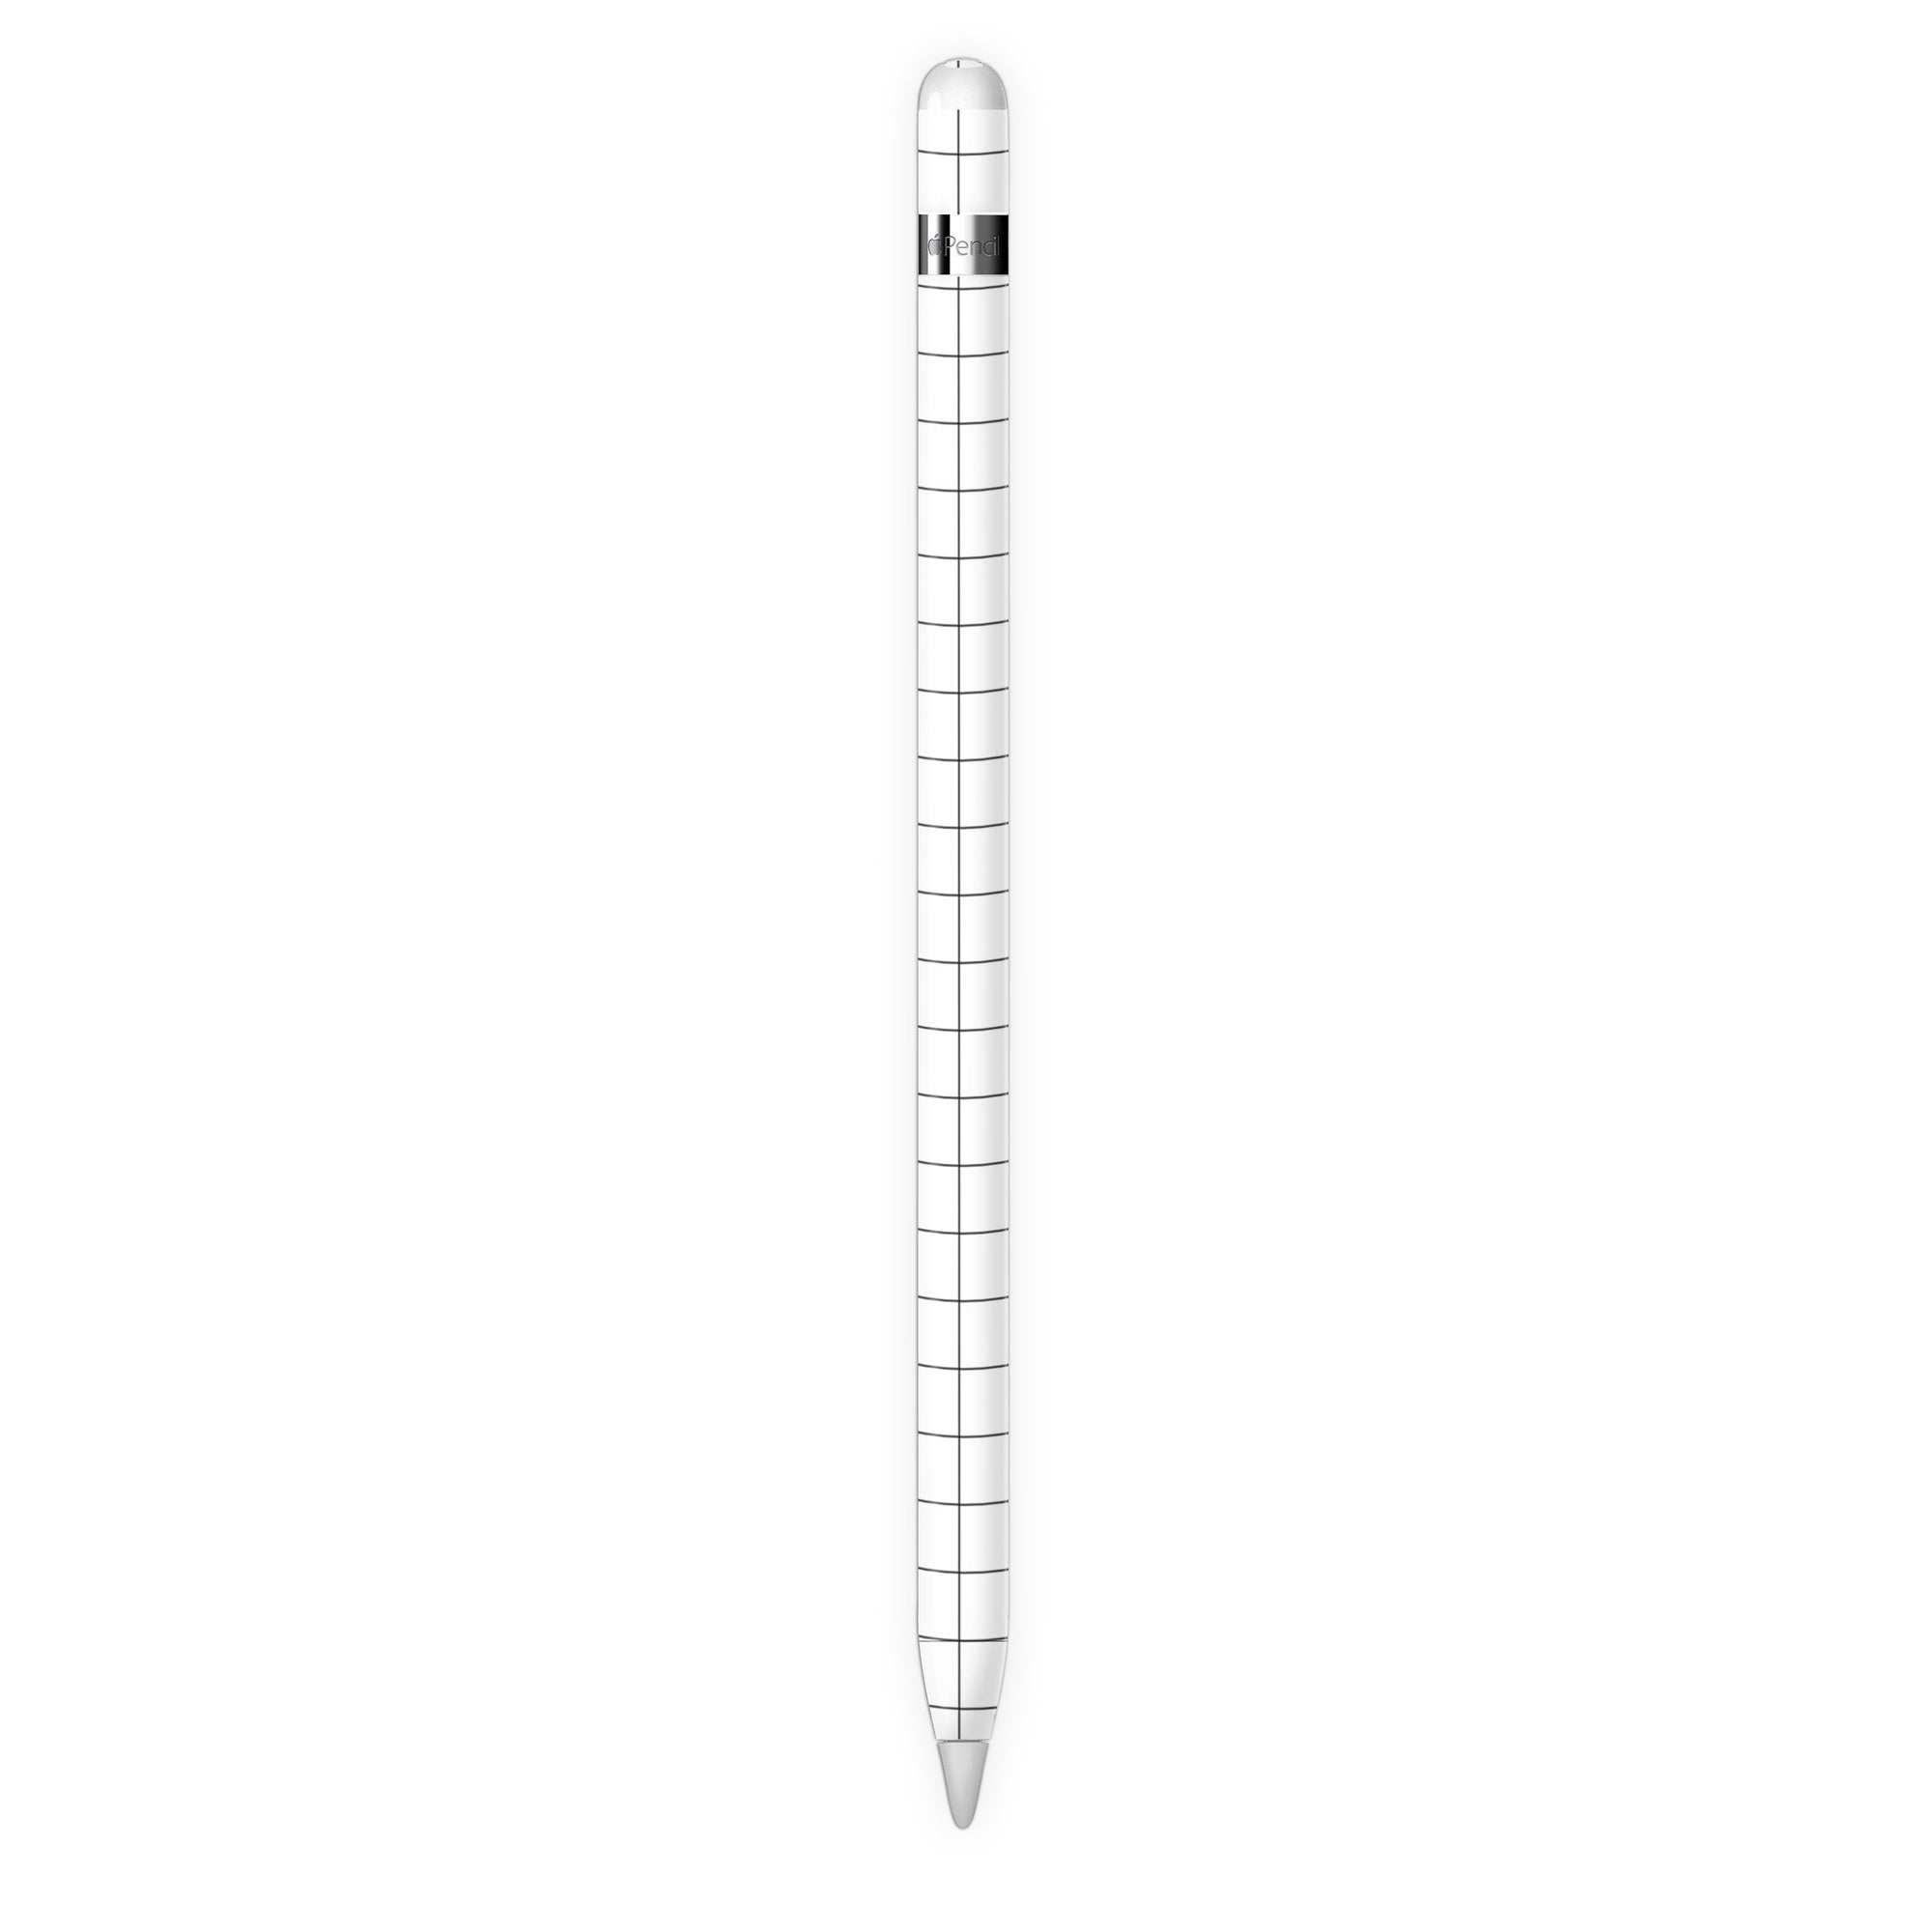 White Grid Line Pencil 1 Skin